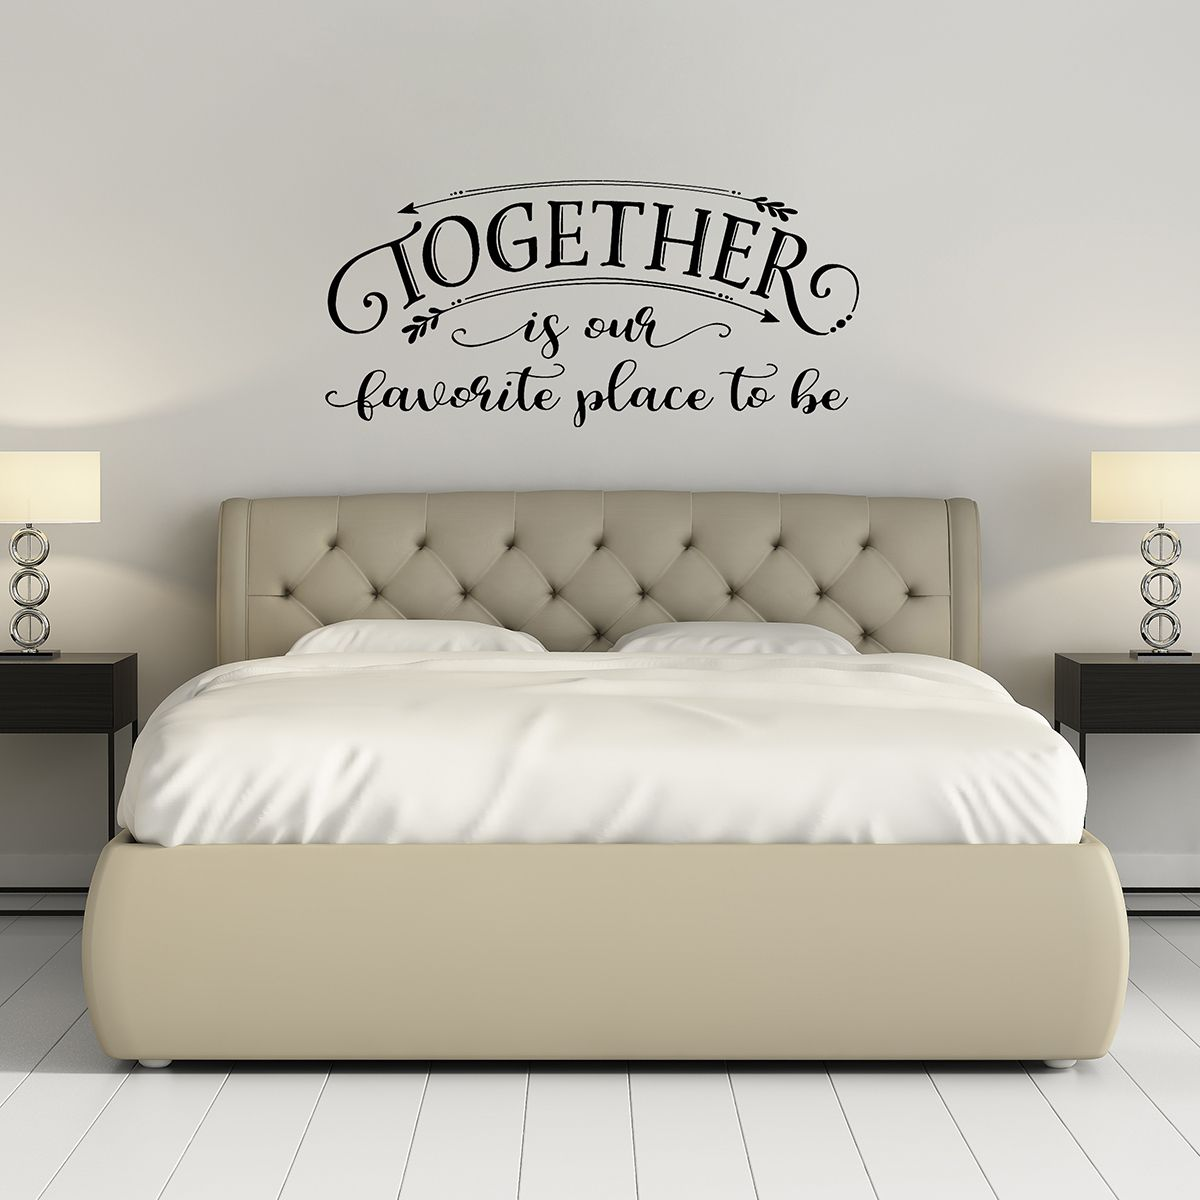 Beautiful love quotes - life Together quotes - Wall art decals